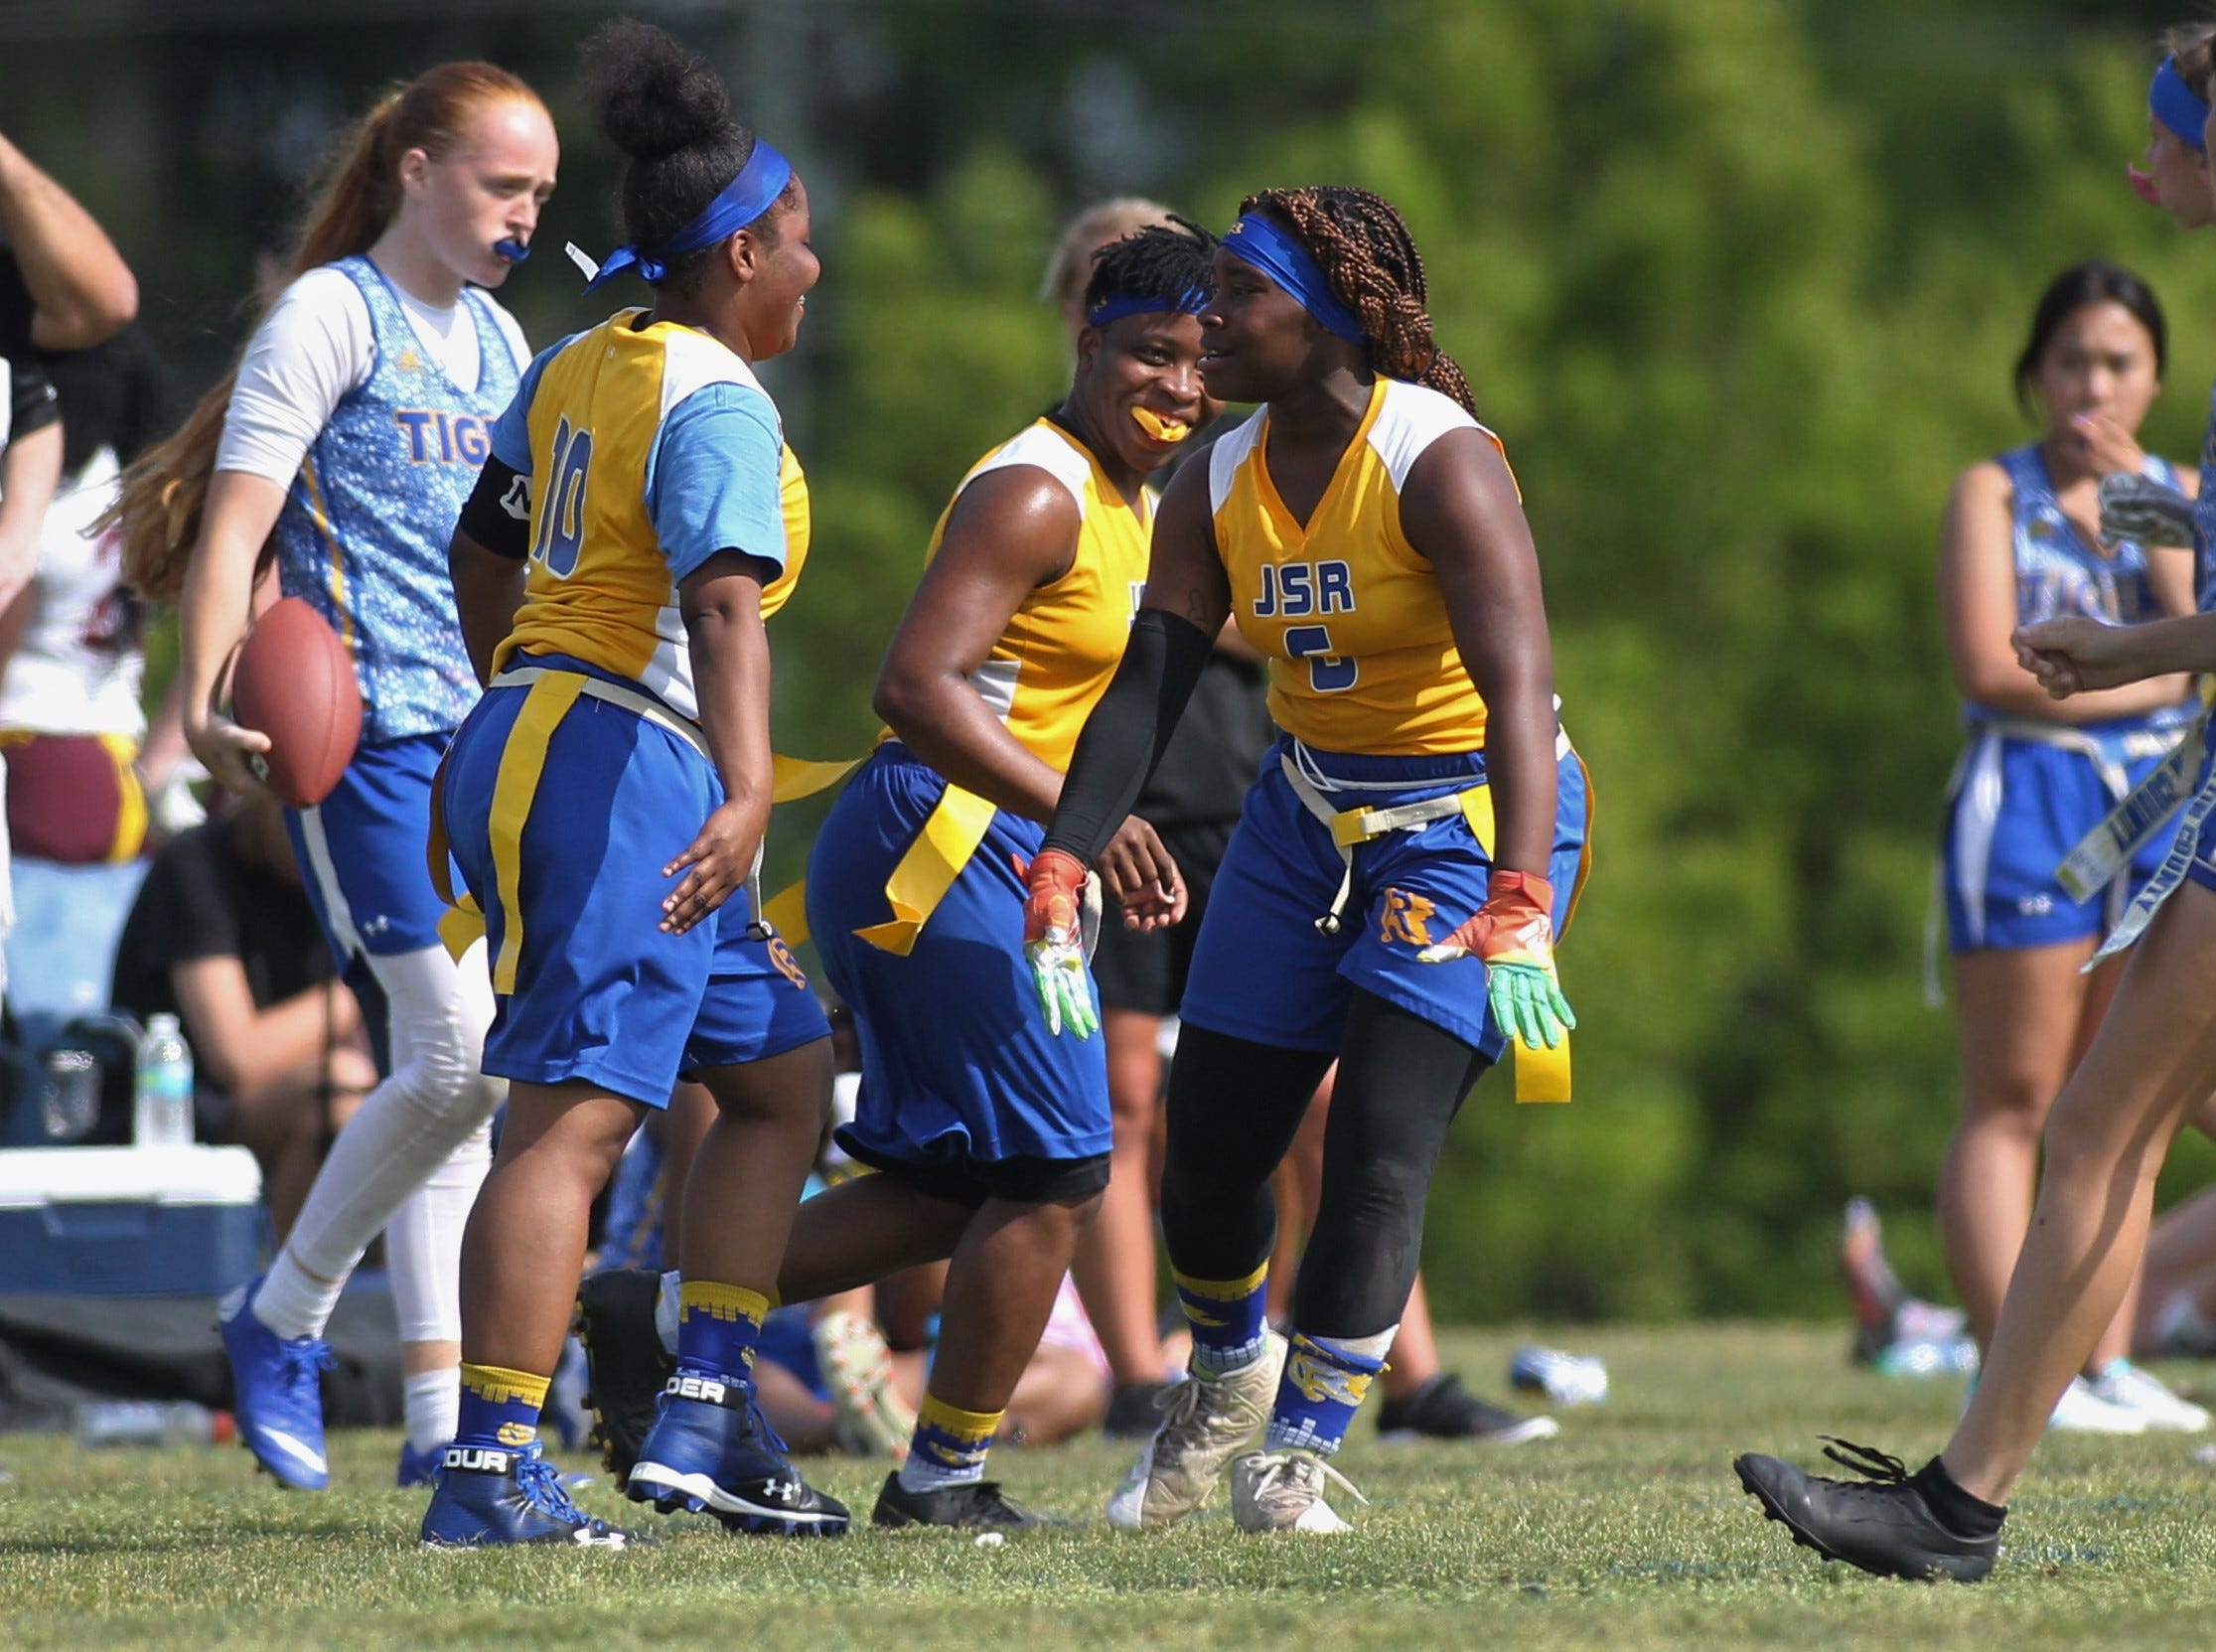 Rickards' Ne'Aysia Randall (10) and Heaven Haynes (6) celbrate a sack during the 2019 Capital City Classic flag football tournament at the FSU Rec SportsPlex on April 6, 2019.